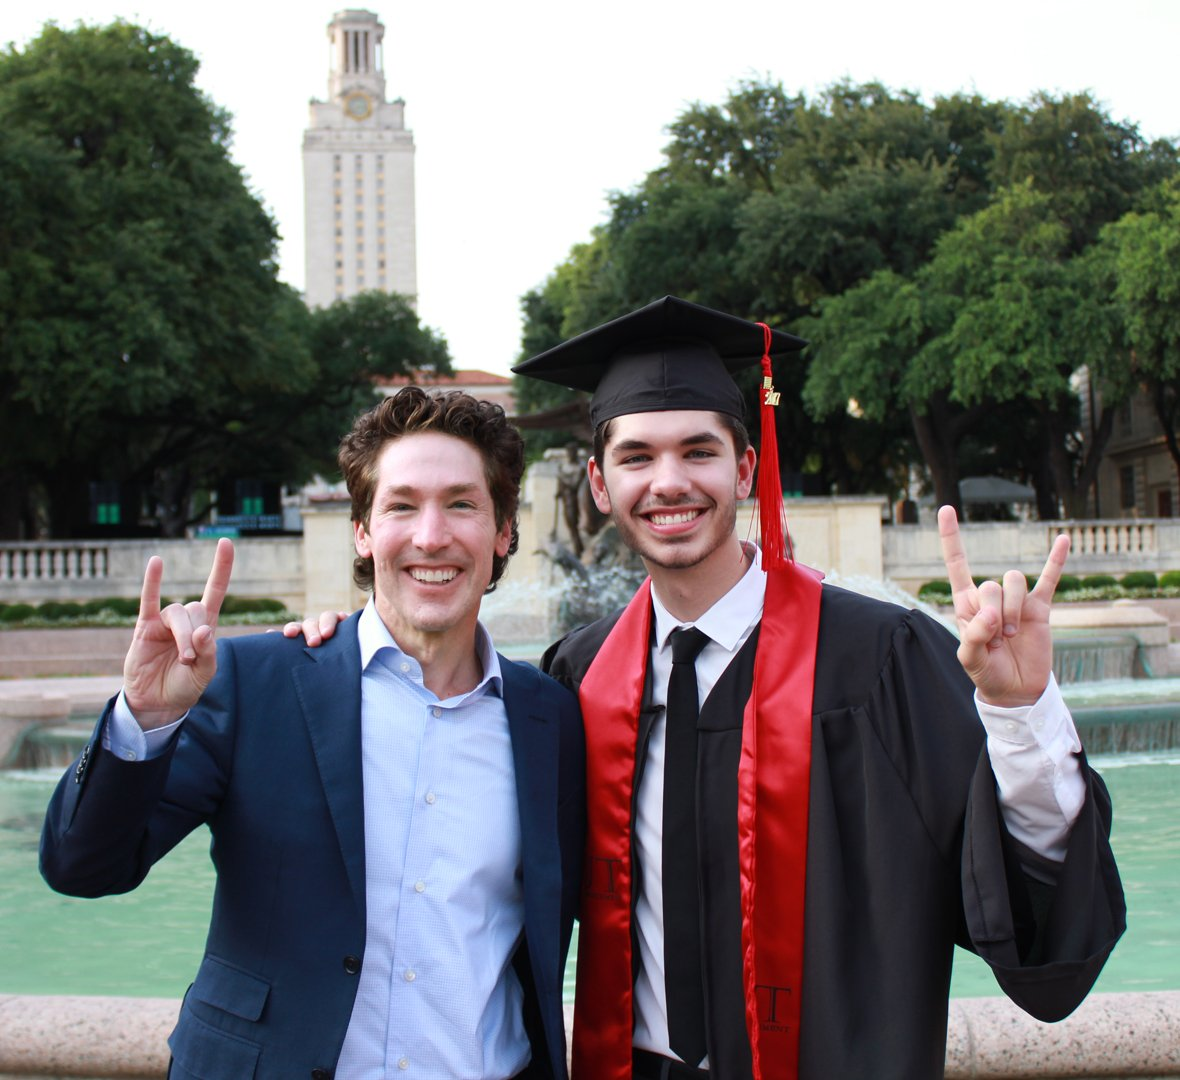 We had a great day celebrating @JonathanOsteen's graduation from the University of Texas at Austin! So proud of him!